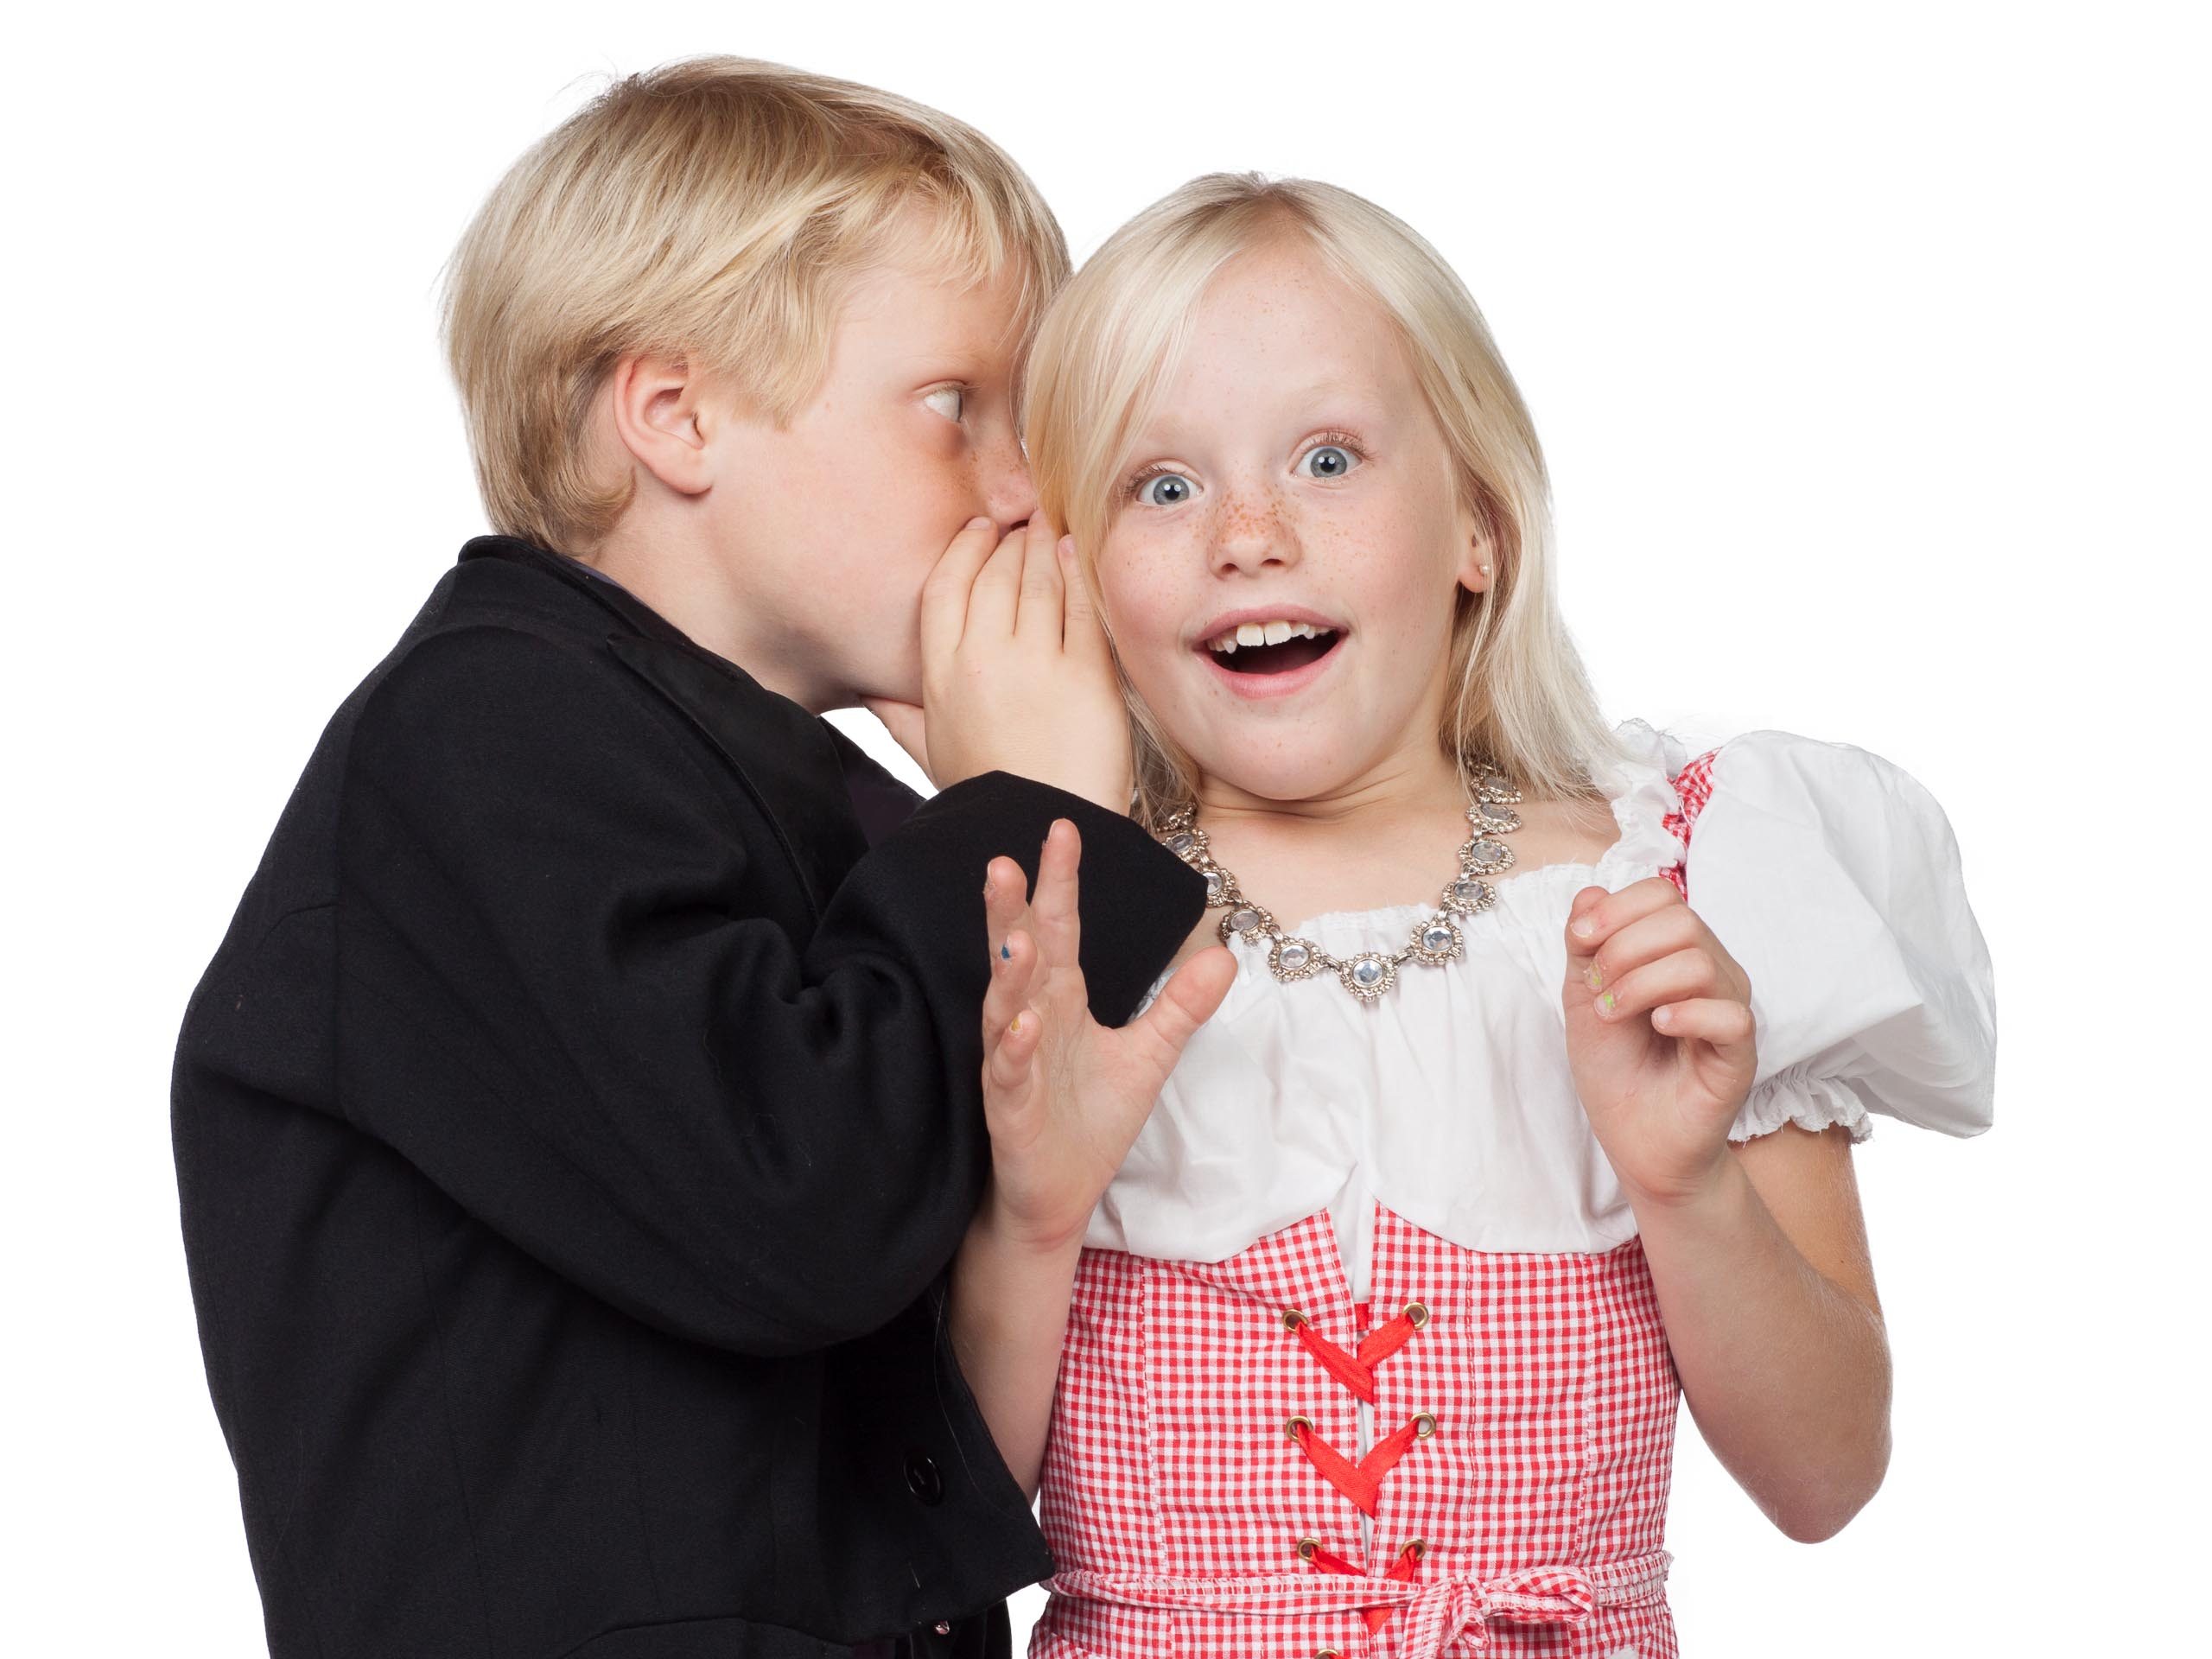 Young boy whispering in the ear of a girl that looks excited.